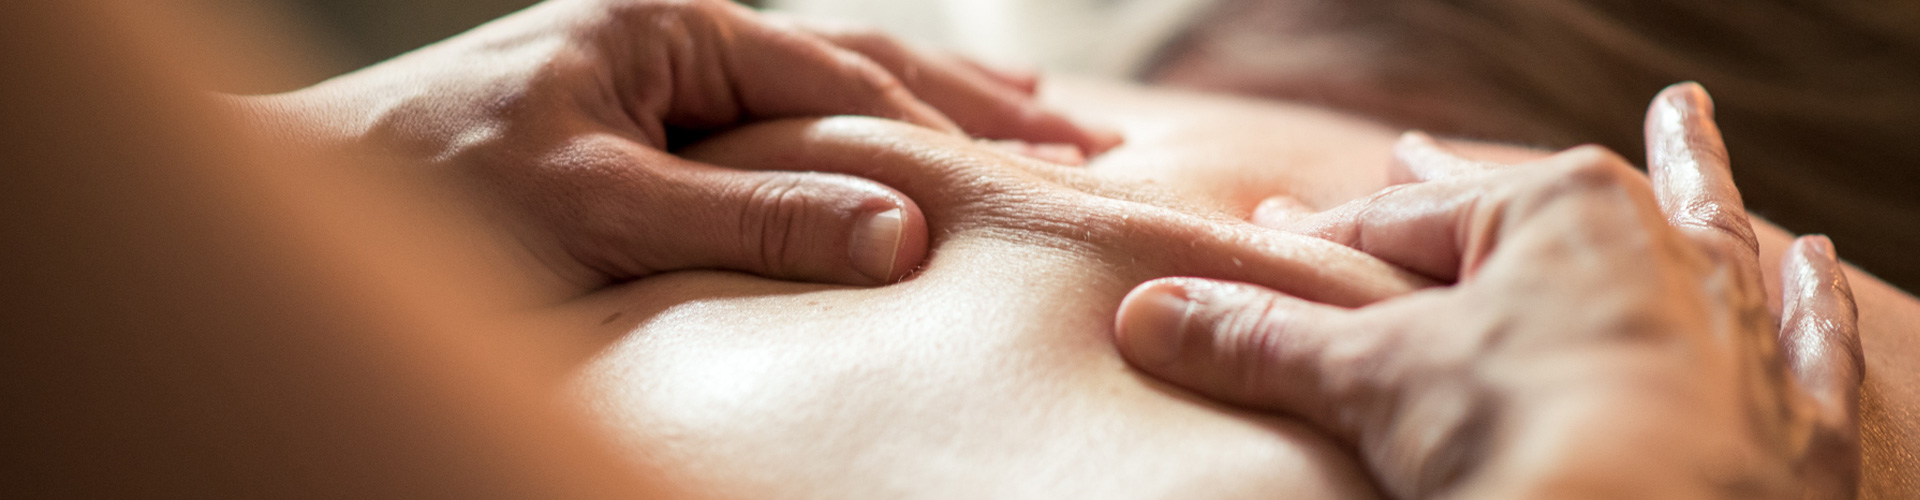 Massage therapy for Classic house massage